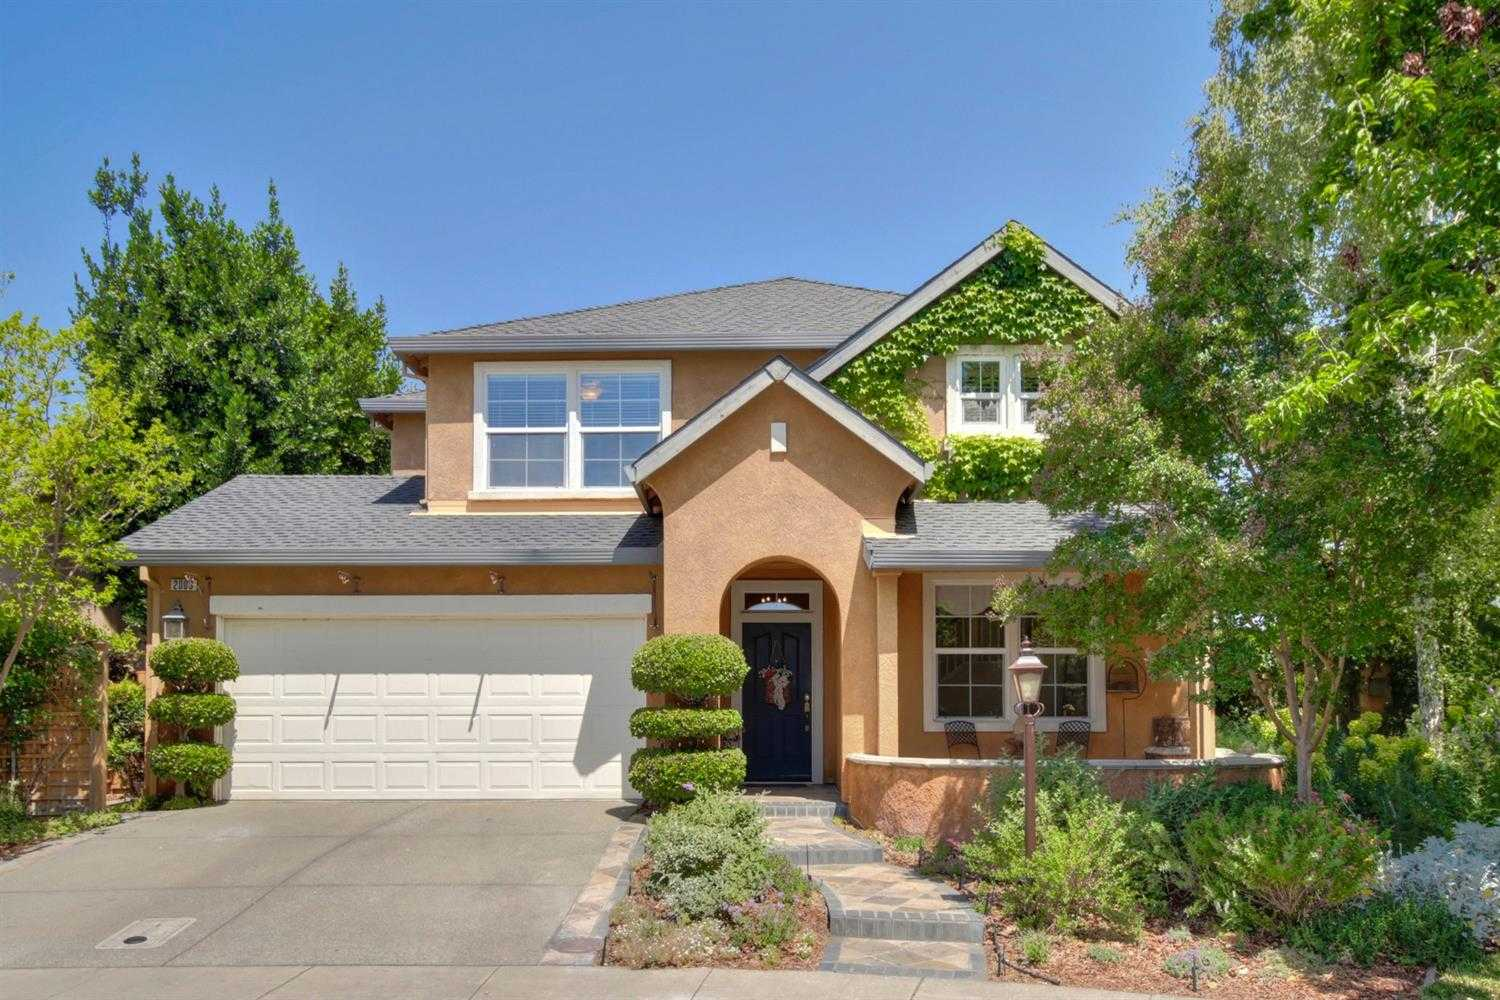 $955,000 - 3Br/3Ba -  for Sale in Wildhorse, Davis